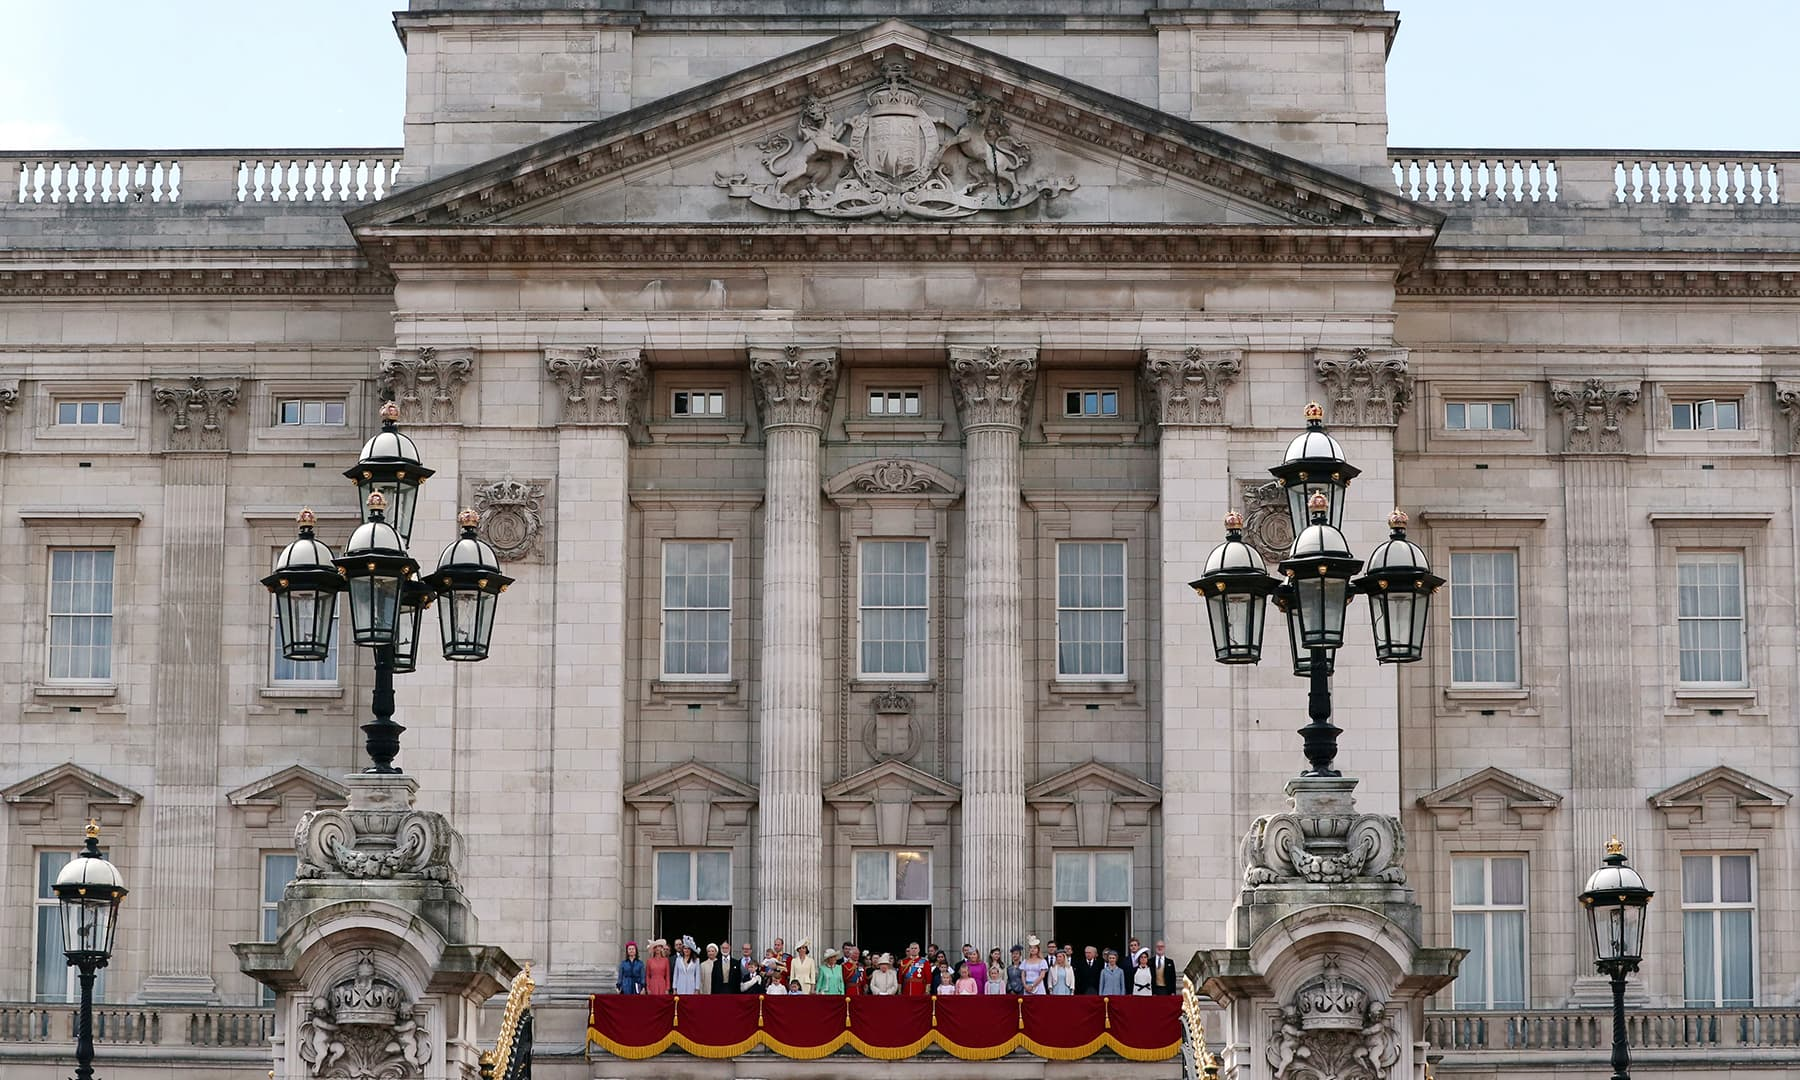 Members of the British royal family appear in the balcony of Buckingham Palace. — Reuters